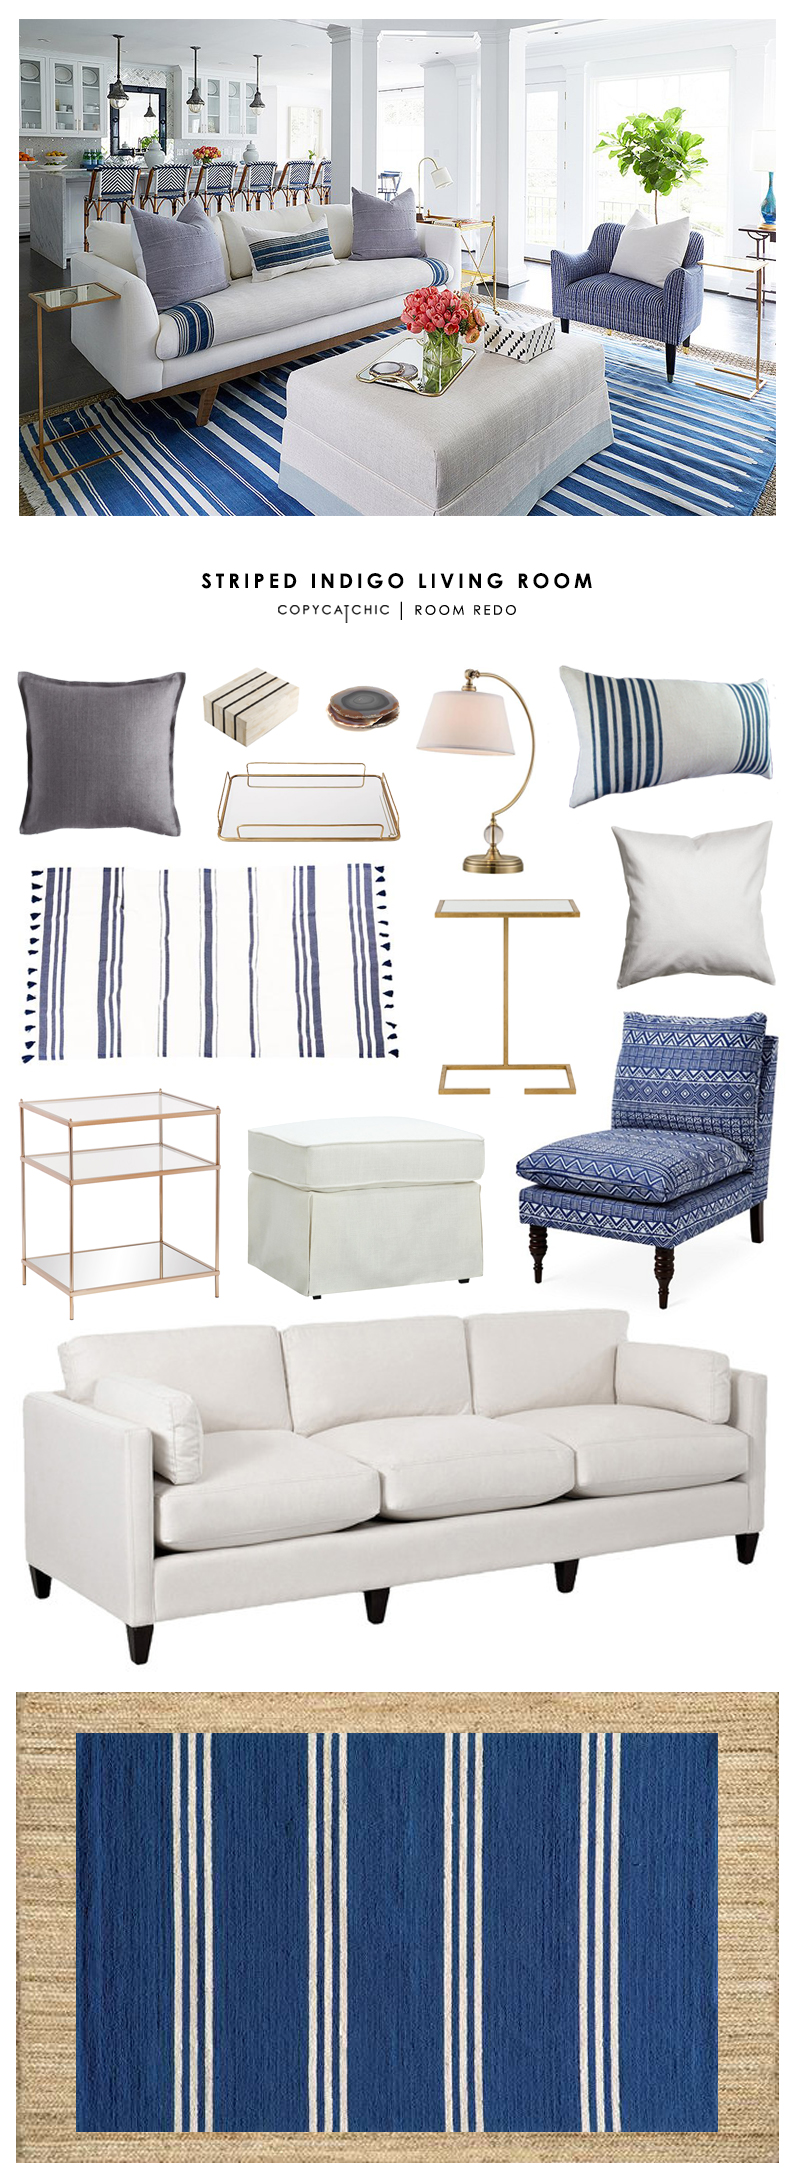 This beachy california striped indigo living room by One Kings Lane gets recreated for less by Copy Cat Chic luxe living for less budget home decor & design